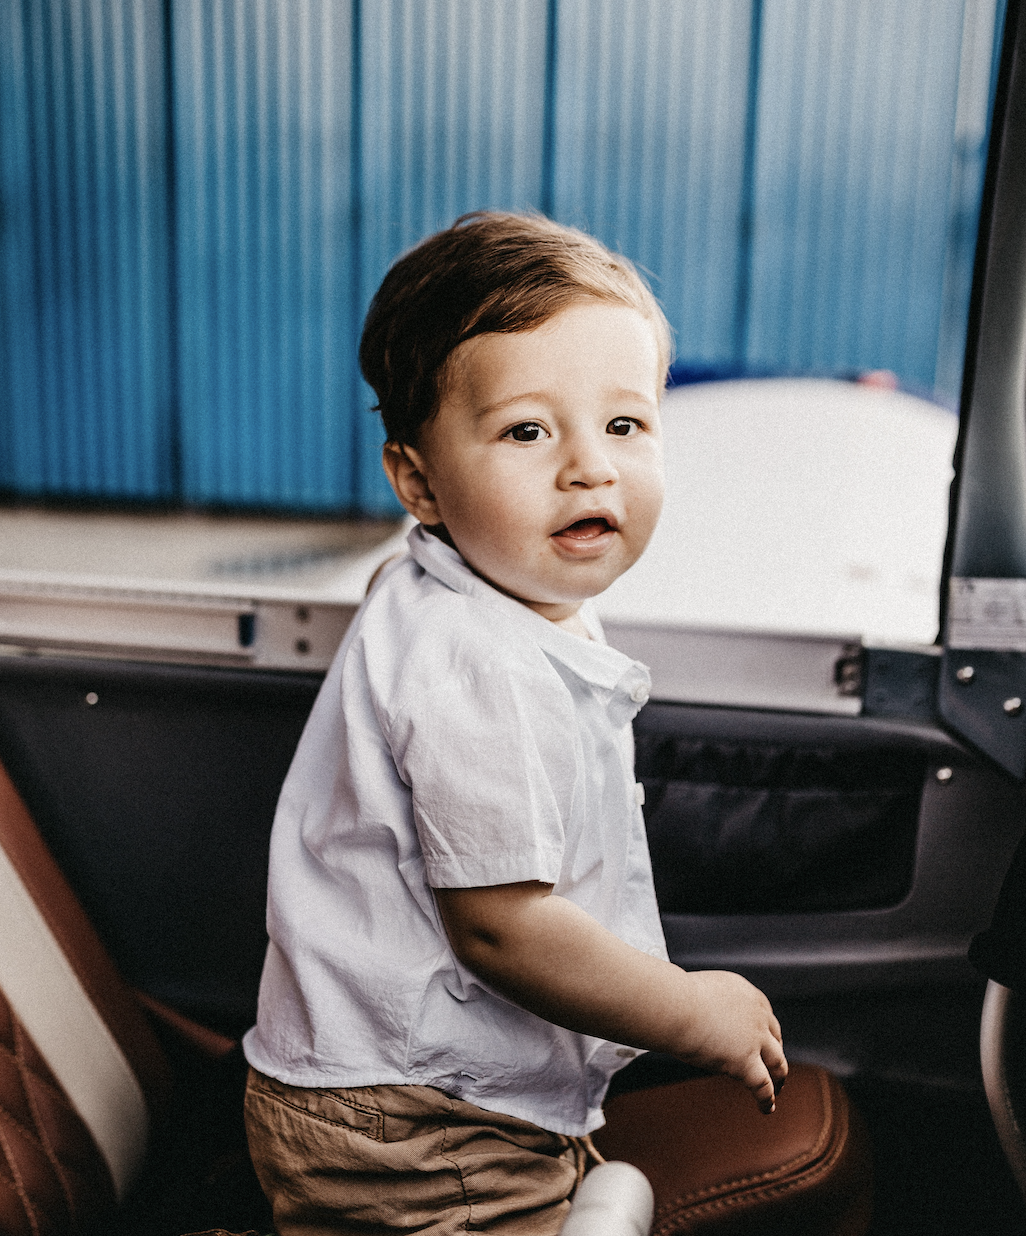 Car Seat Safety – What You Need to Know